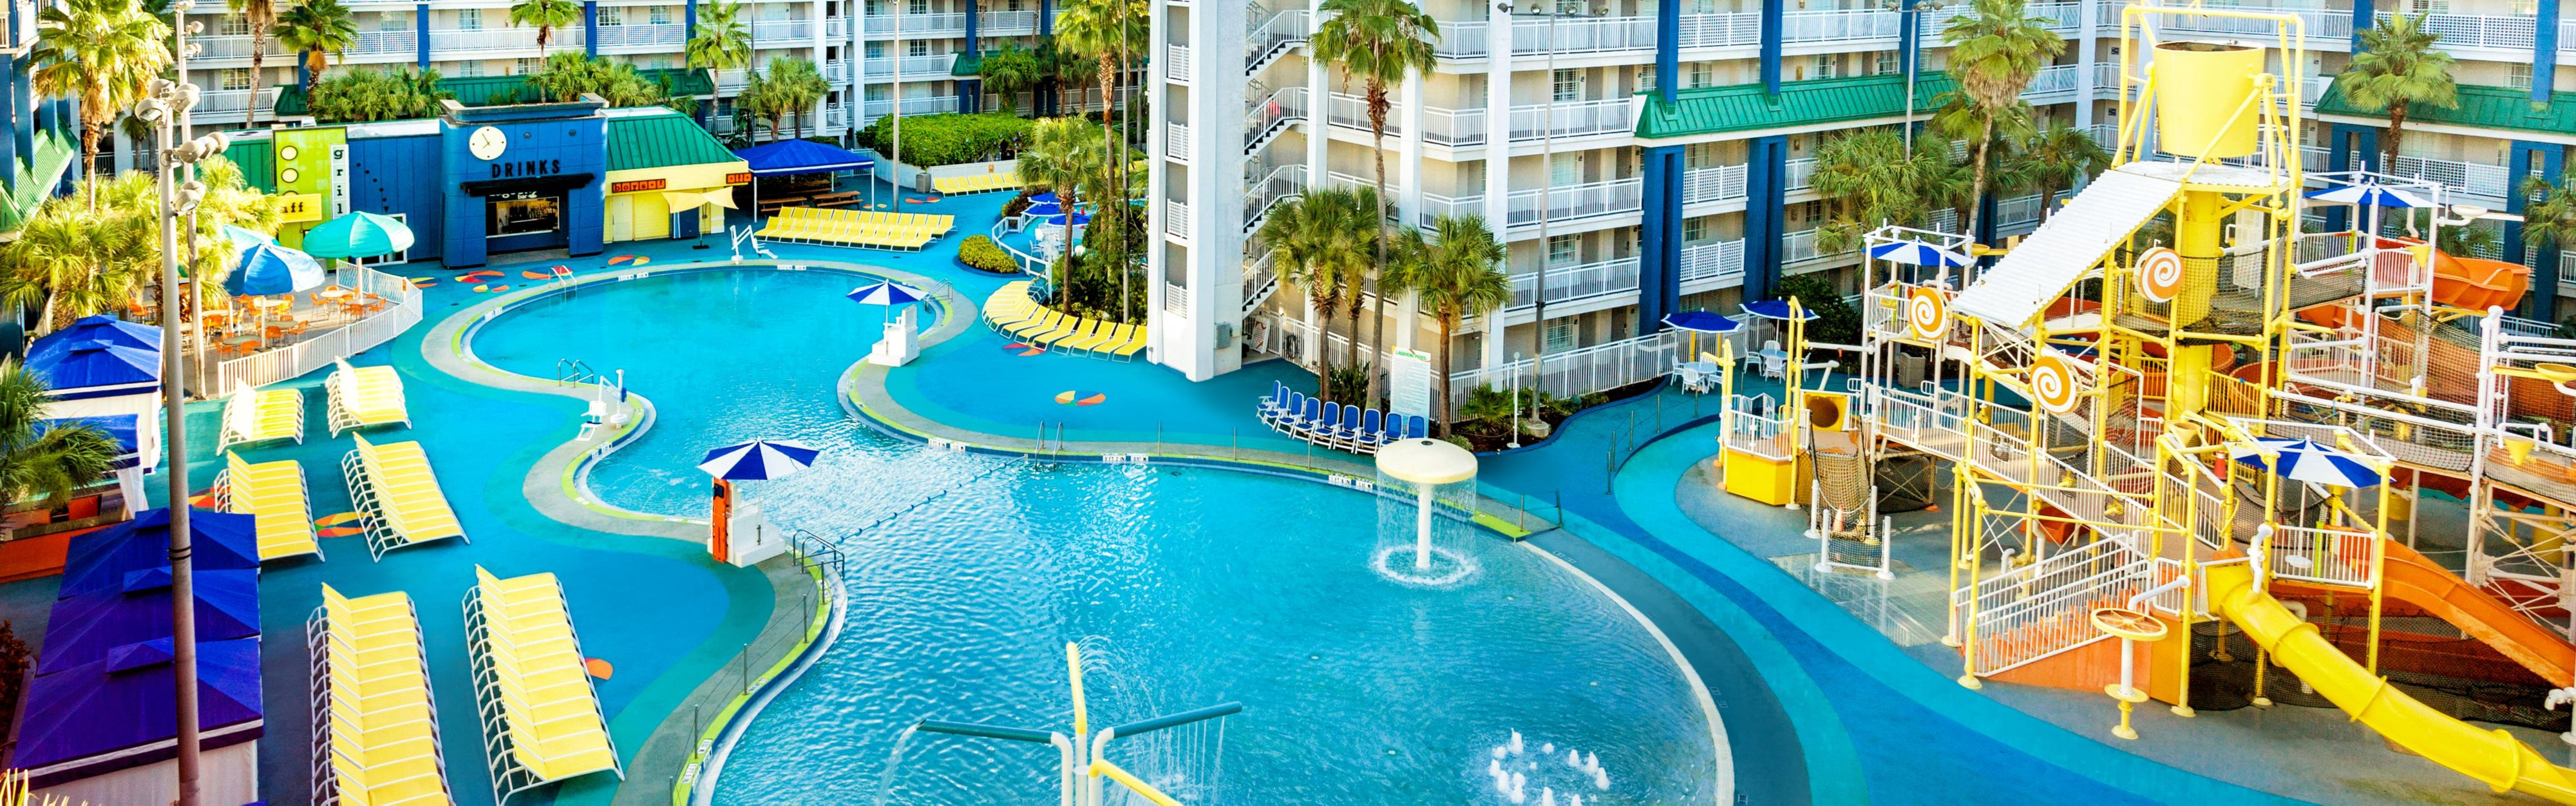 ... Orlando Suites   Waterpark; The Lagoon Featuring A Zero Dpeth Entry  Pool And Waterpark ...